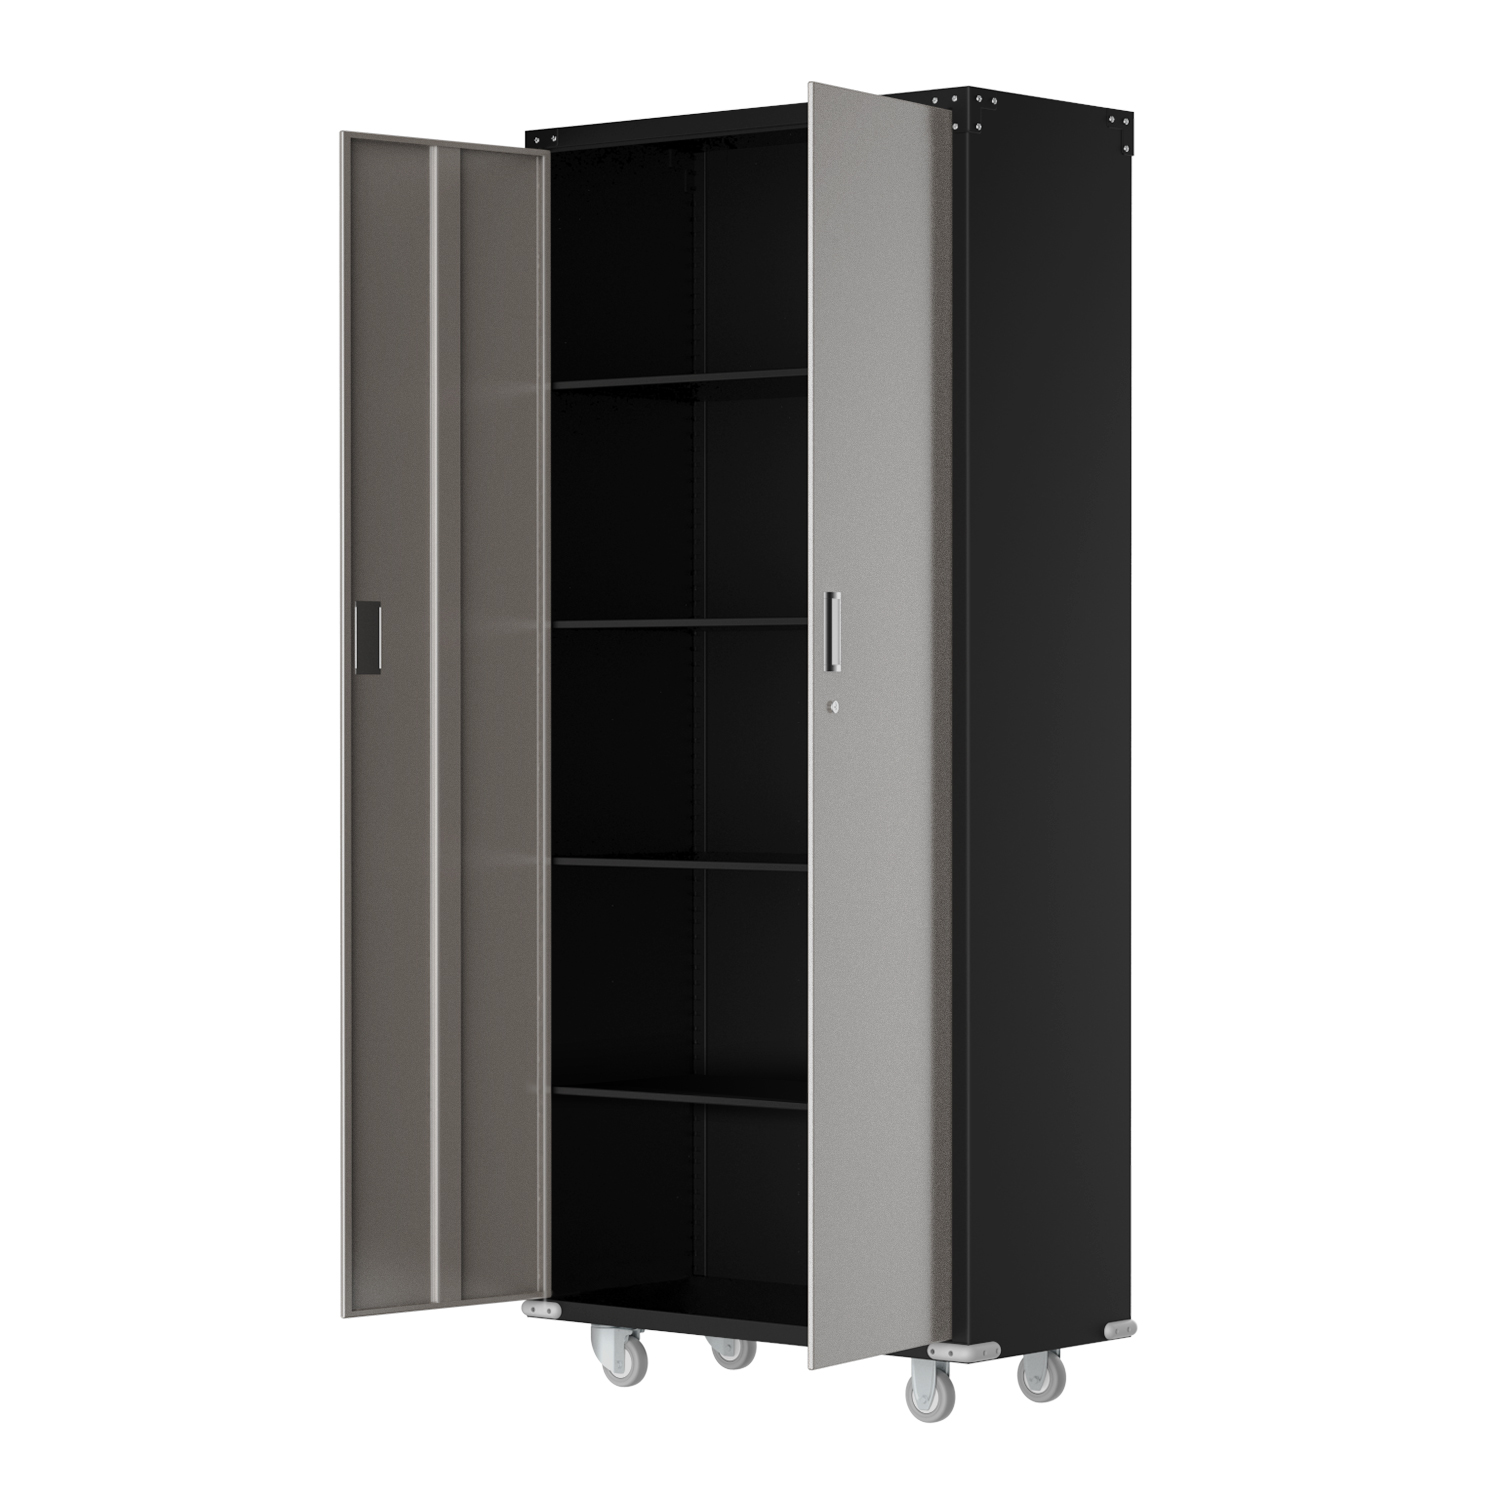 Details About Heavy Duty Commercial Metal Rolling Tool Storage Cabinet W/ 4  Shelves & Key Lock